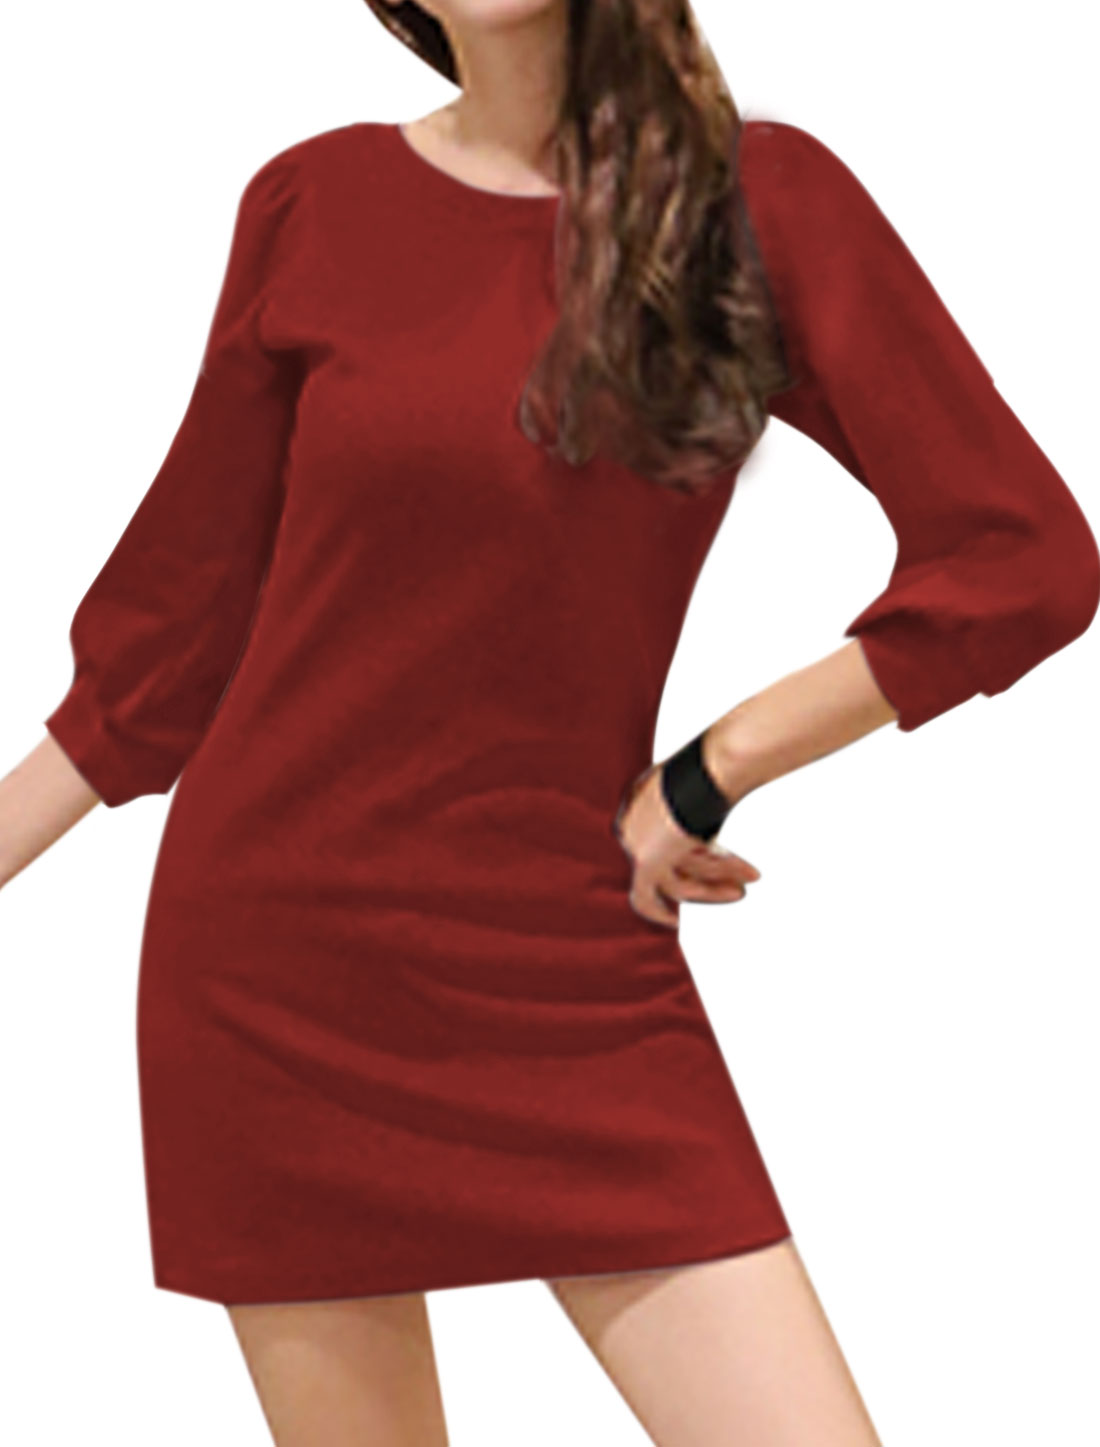 Woman Round Neck 3/4 Sleeves Slim Fit Tunic Dress Red XS